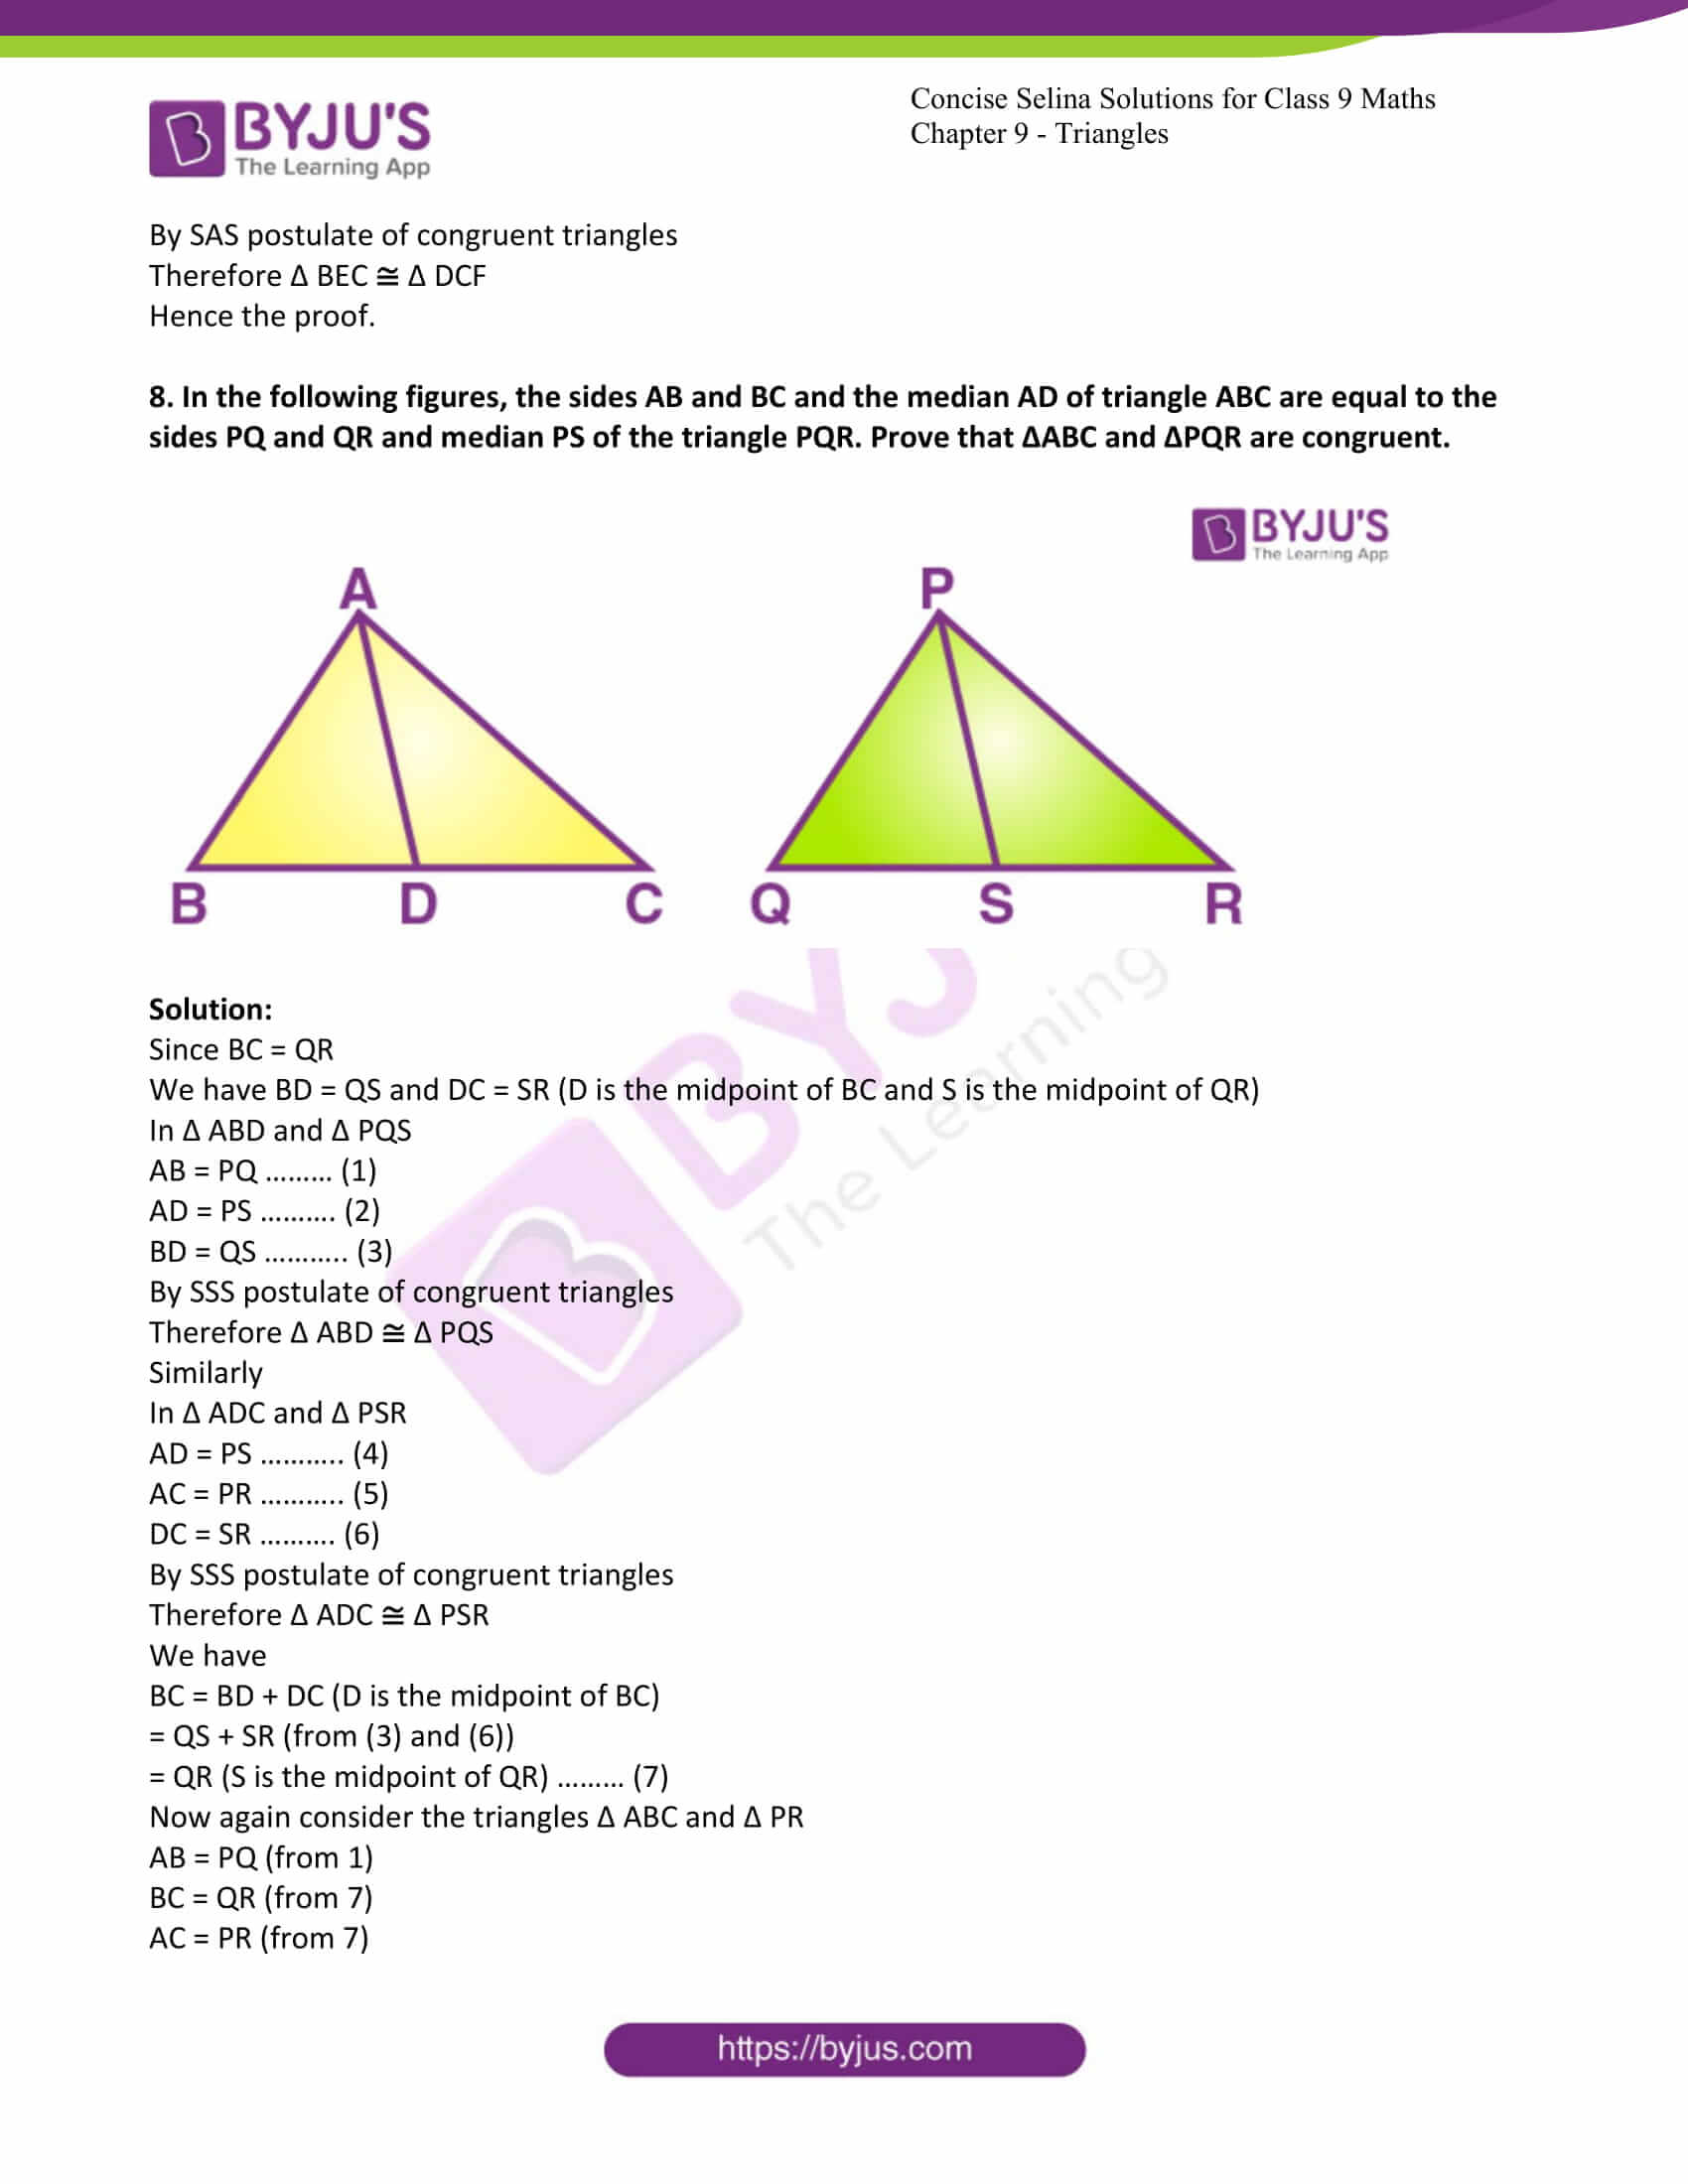 icse class 9 maths may10 selina solutions chapter 9 triangles 28